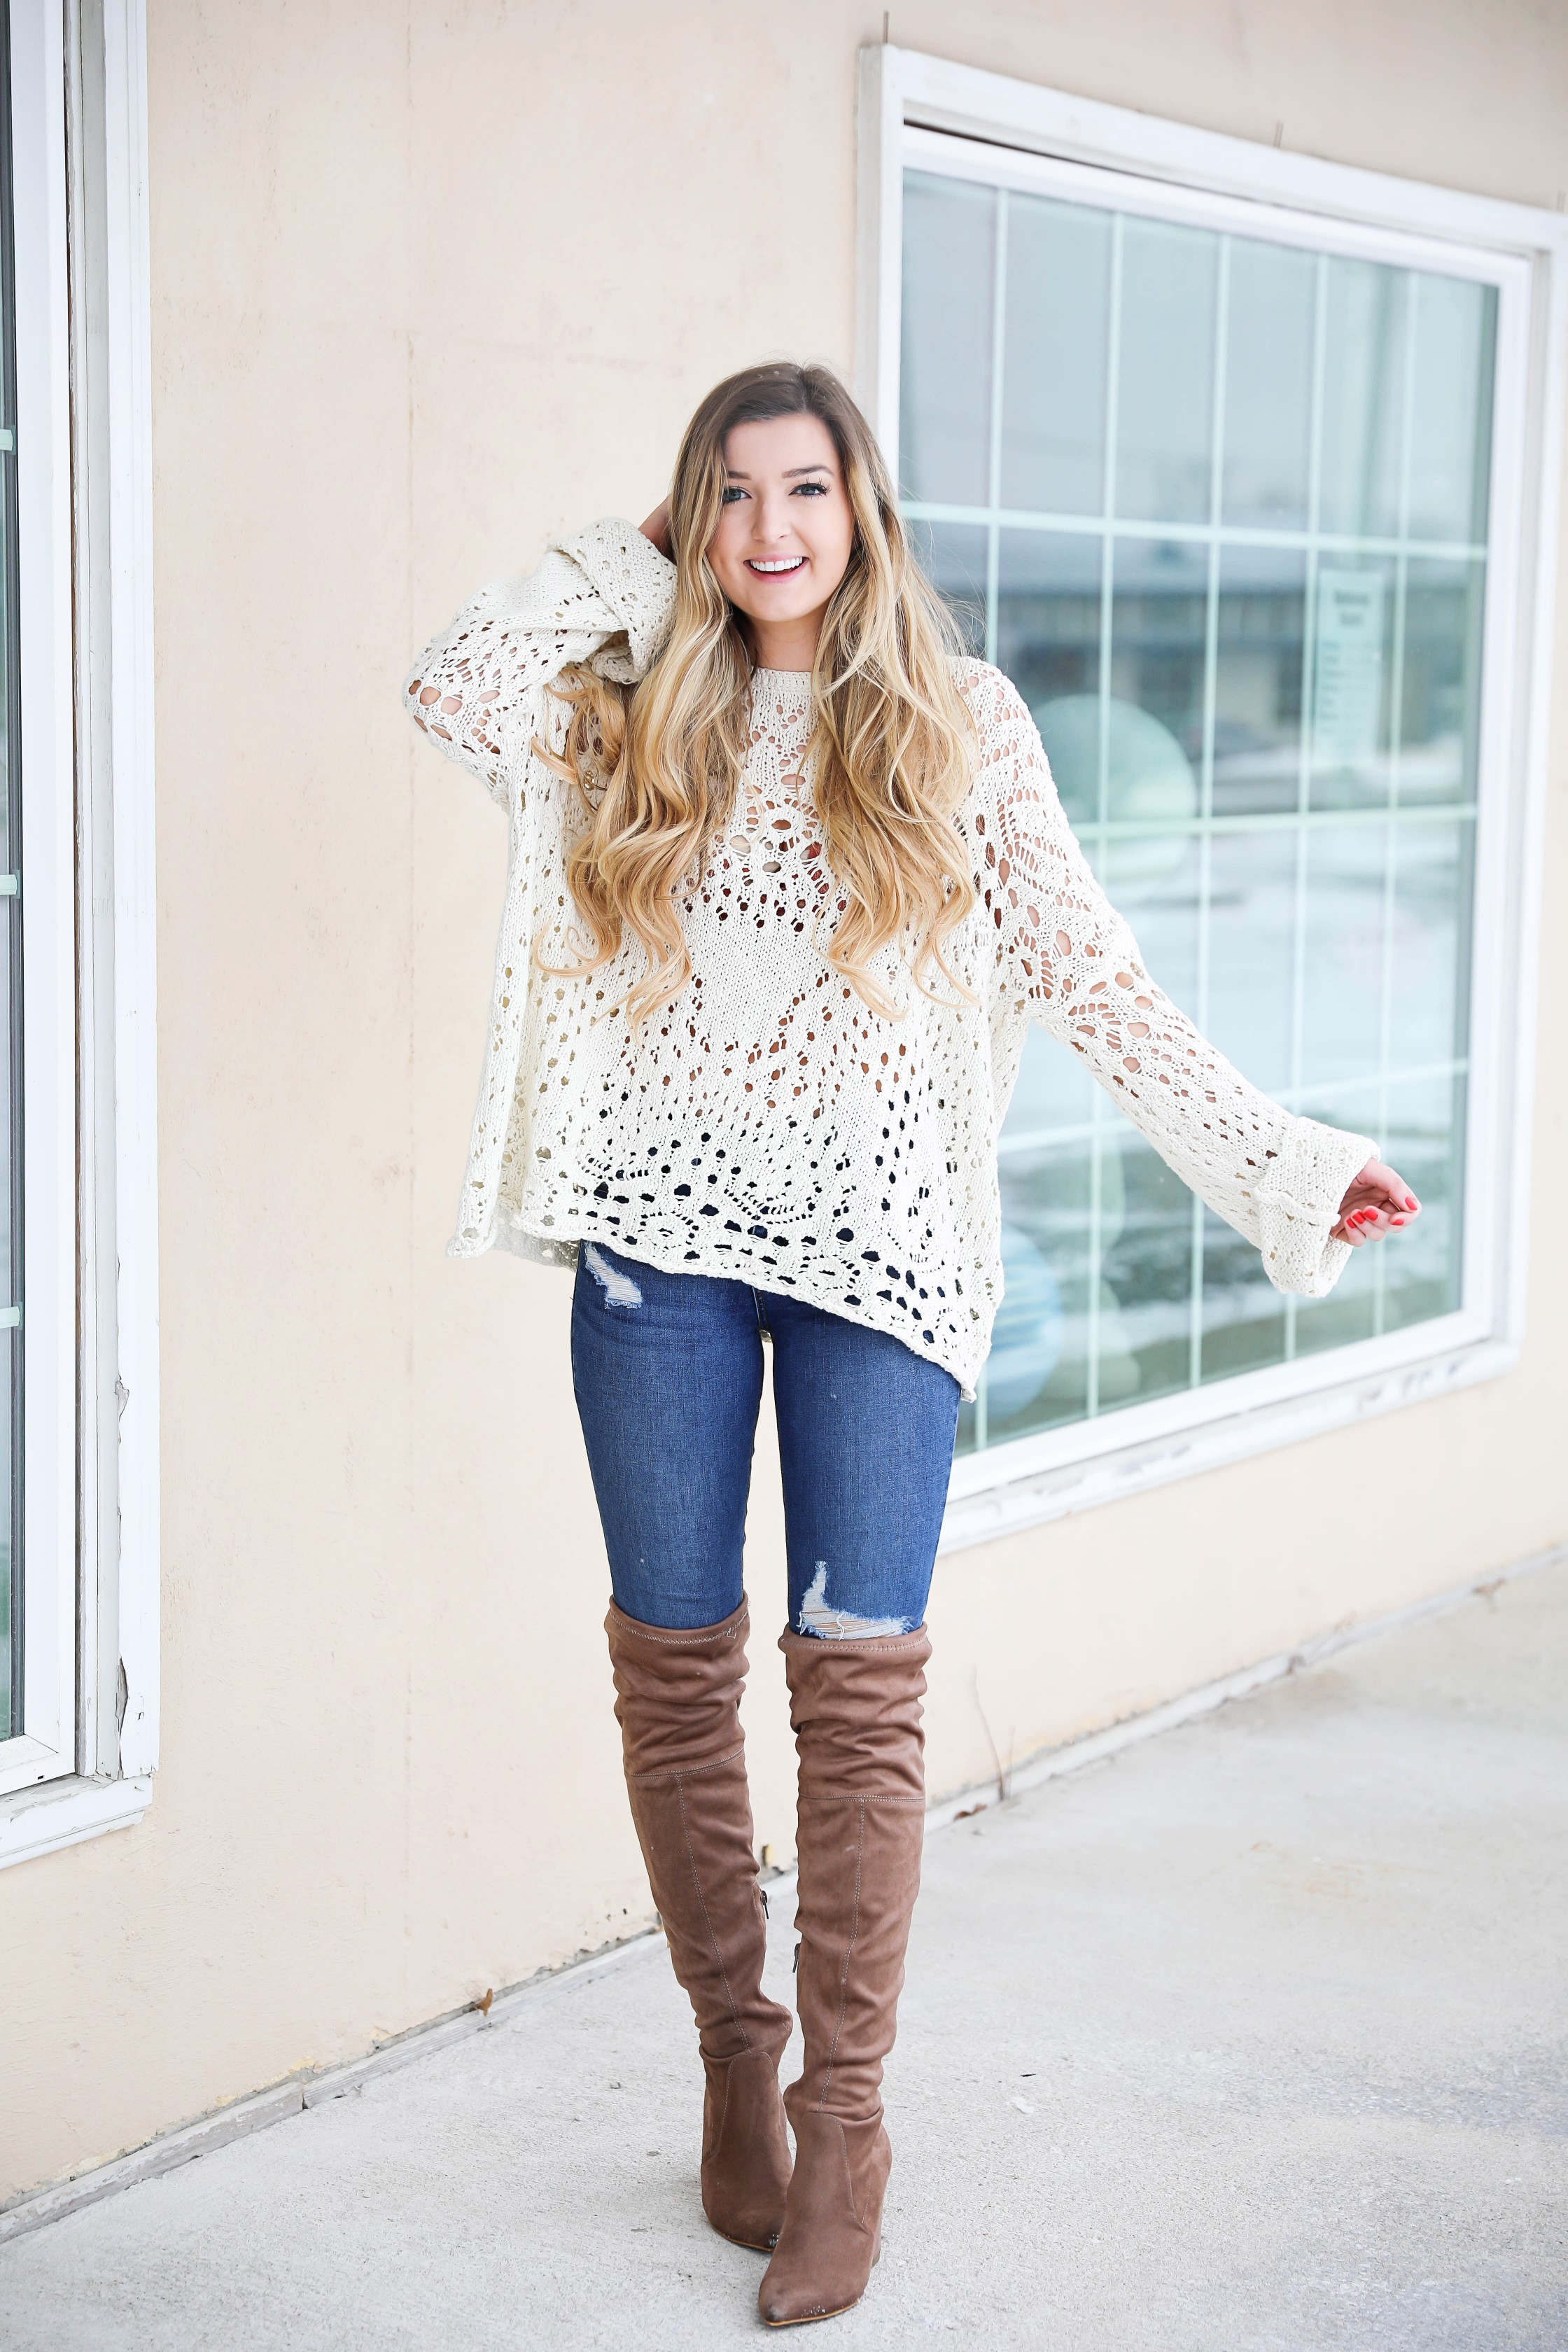 Free People crochet sweater and rust orange bralette peaking through the sweater! Love it with these over the knee boots and ripped denim jeans! Find the details on fashion blog daily dose of charm by lauren lindmark